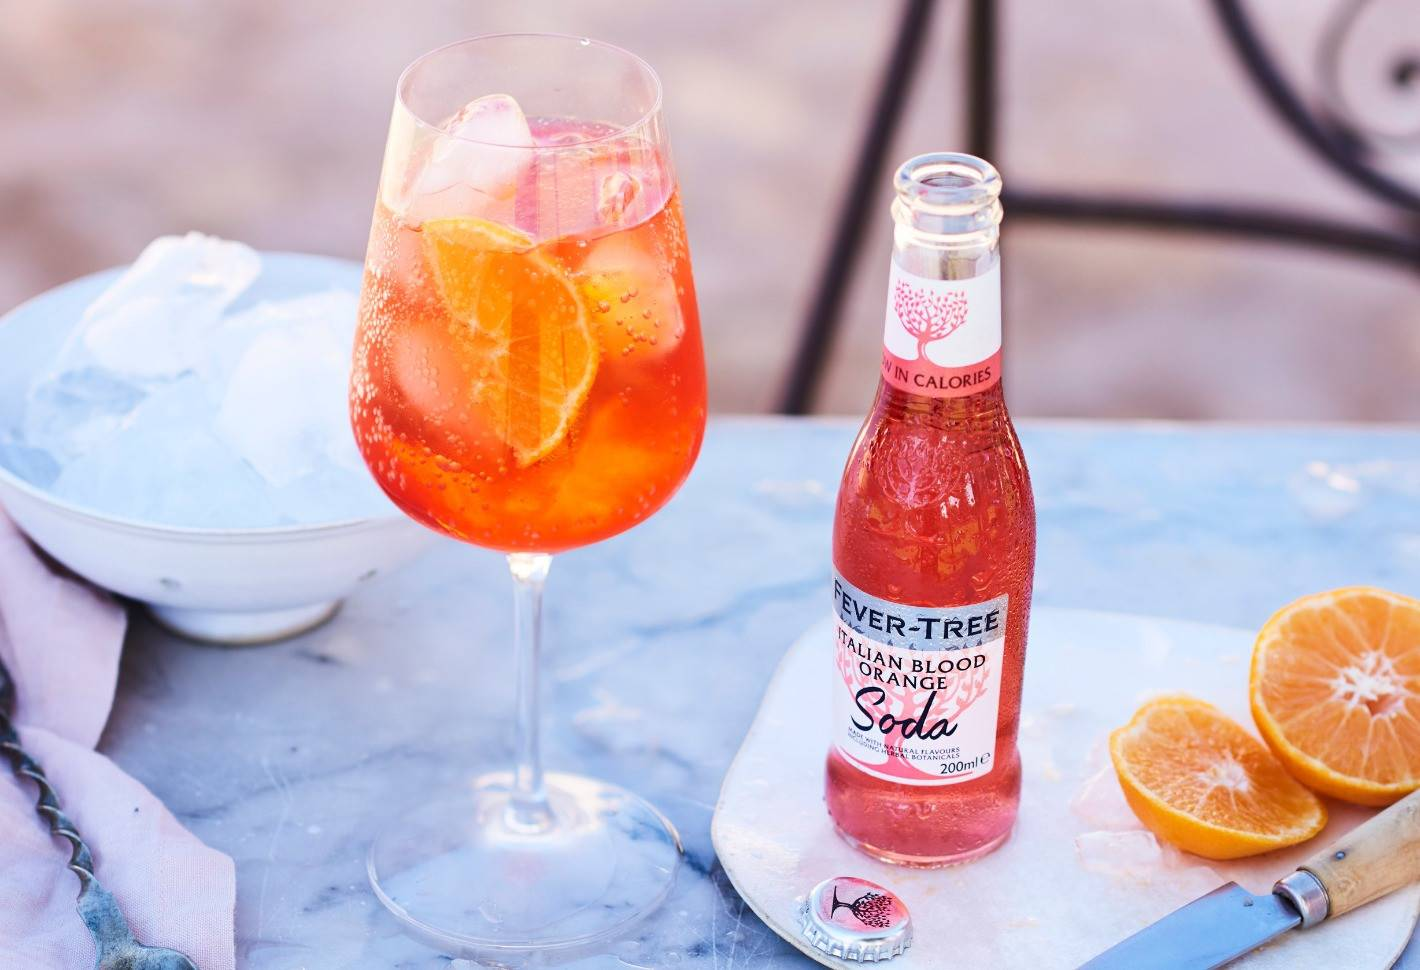 HOW TO MAKE THE ULTIMATE VODKA BLOOD ORANGE SPRITZ